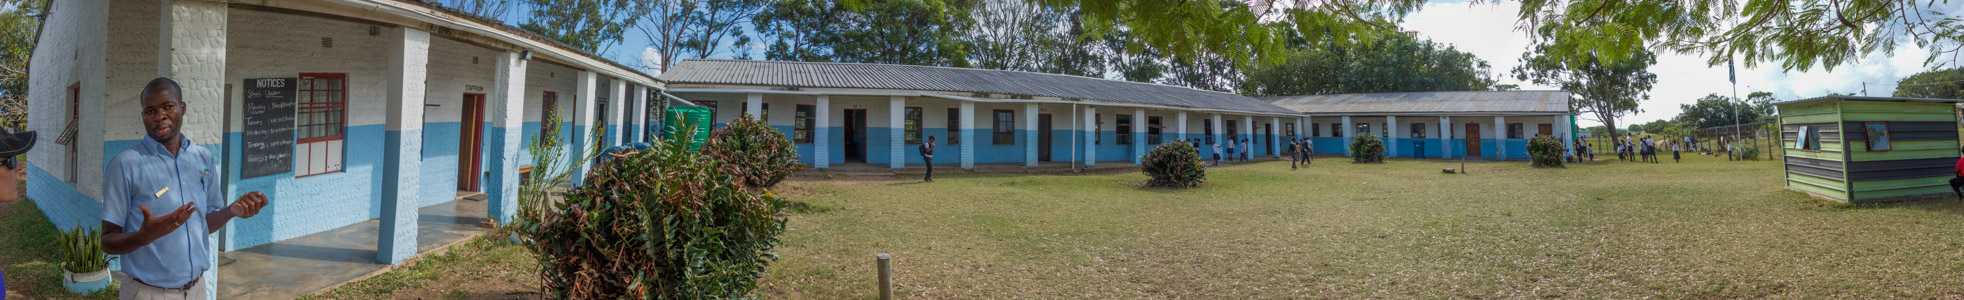 Mabibi Primary School - 6/2016